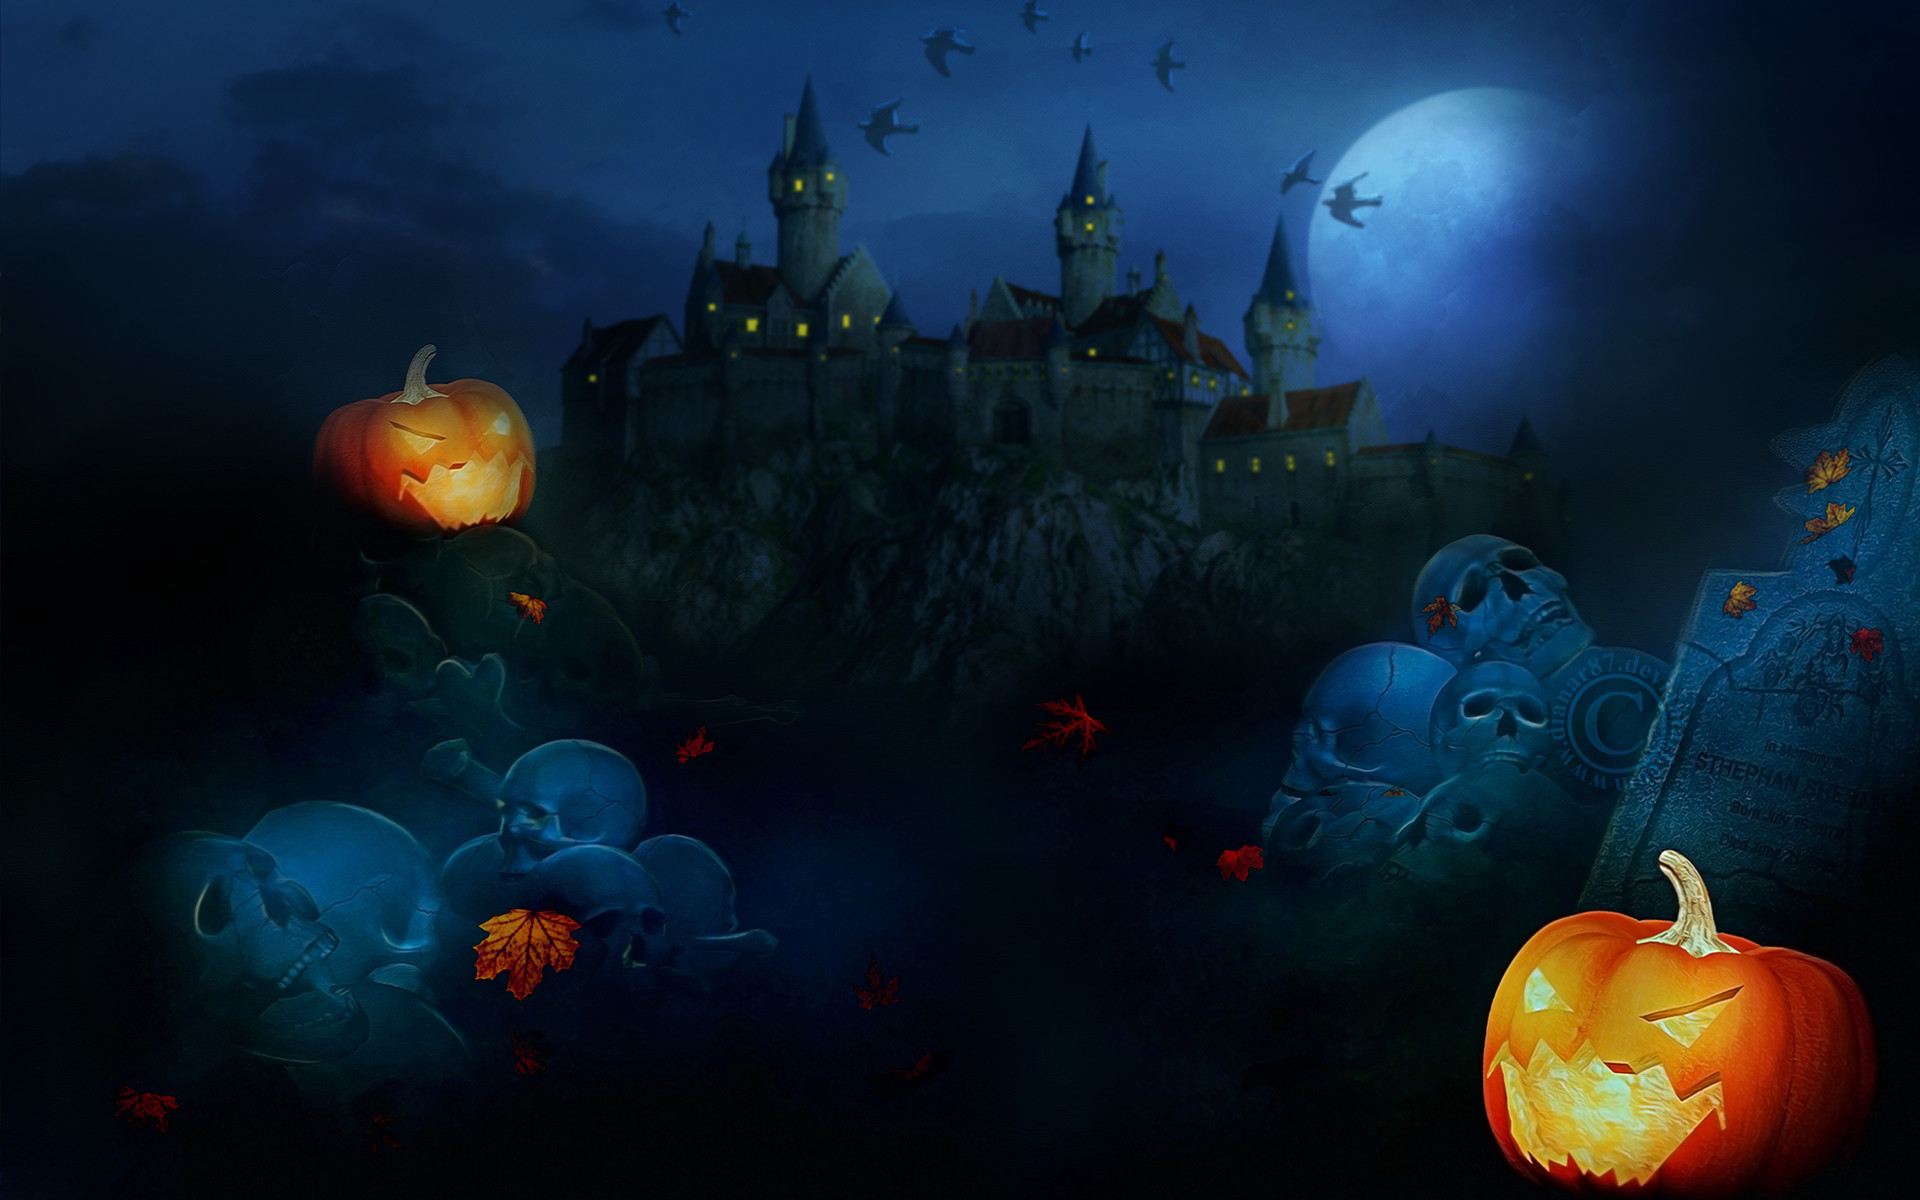 1920x1200 Scary Halloween 2012 HD Wallpapers | Pumpkins, Witches, Spider Web .